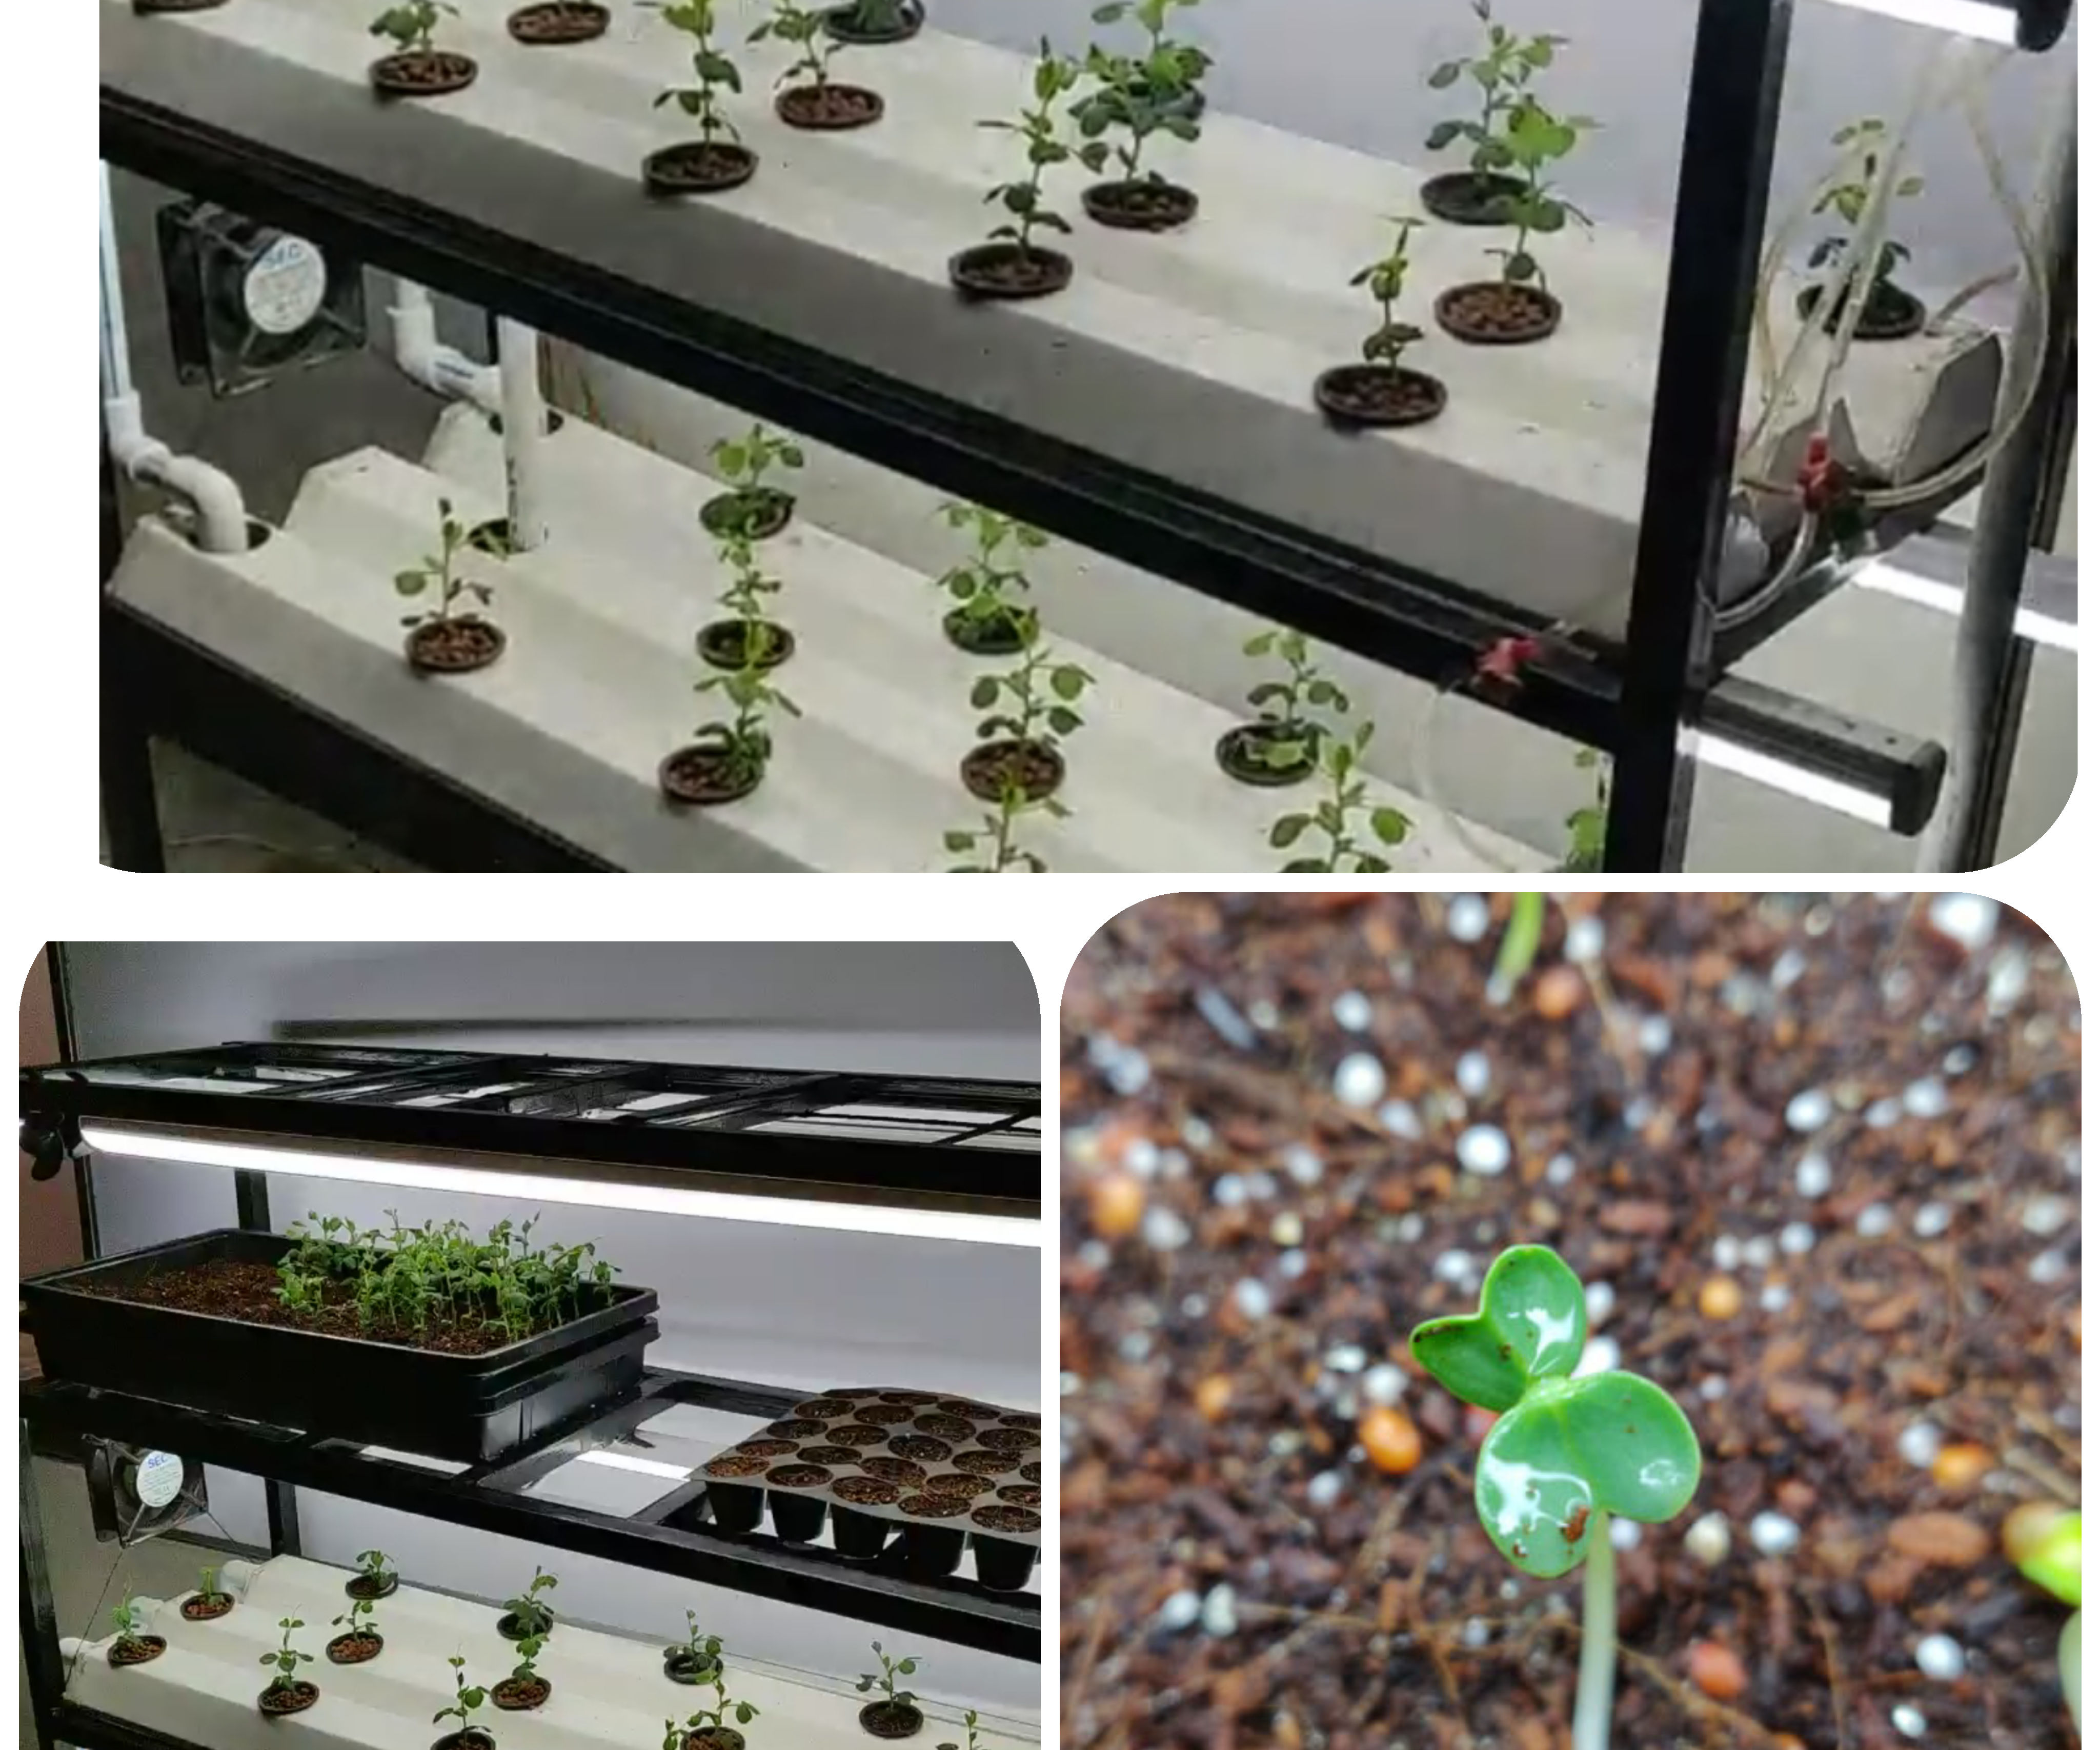 INDOOR HYDROPONIC VEGETABLE GROWING SYSTEM